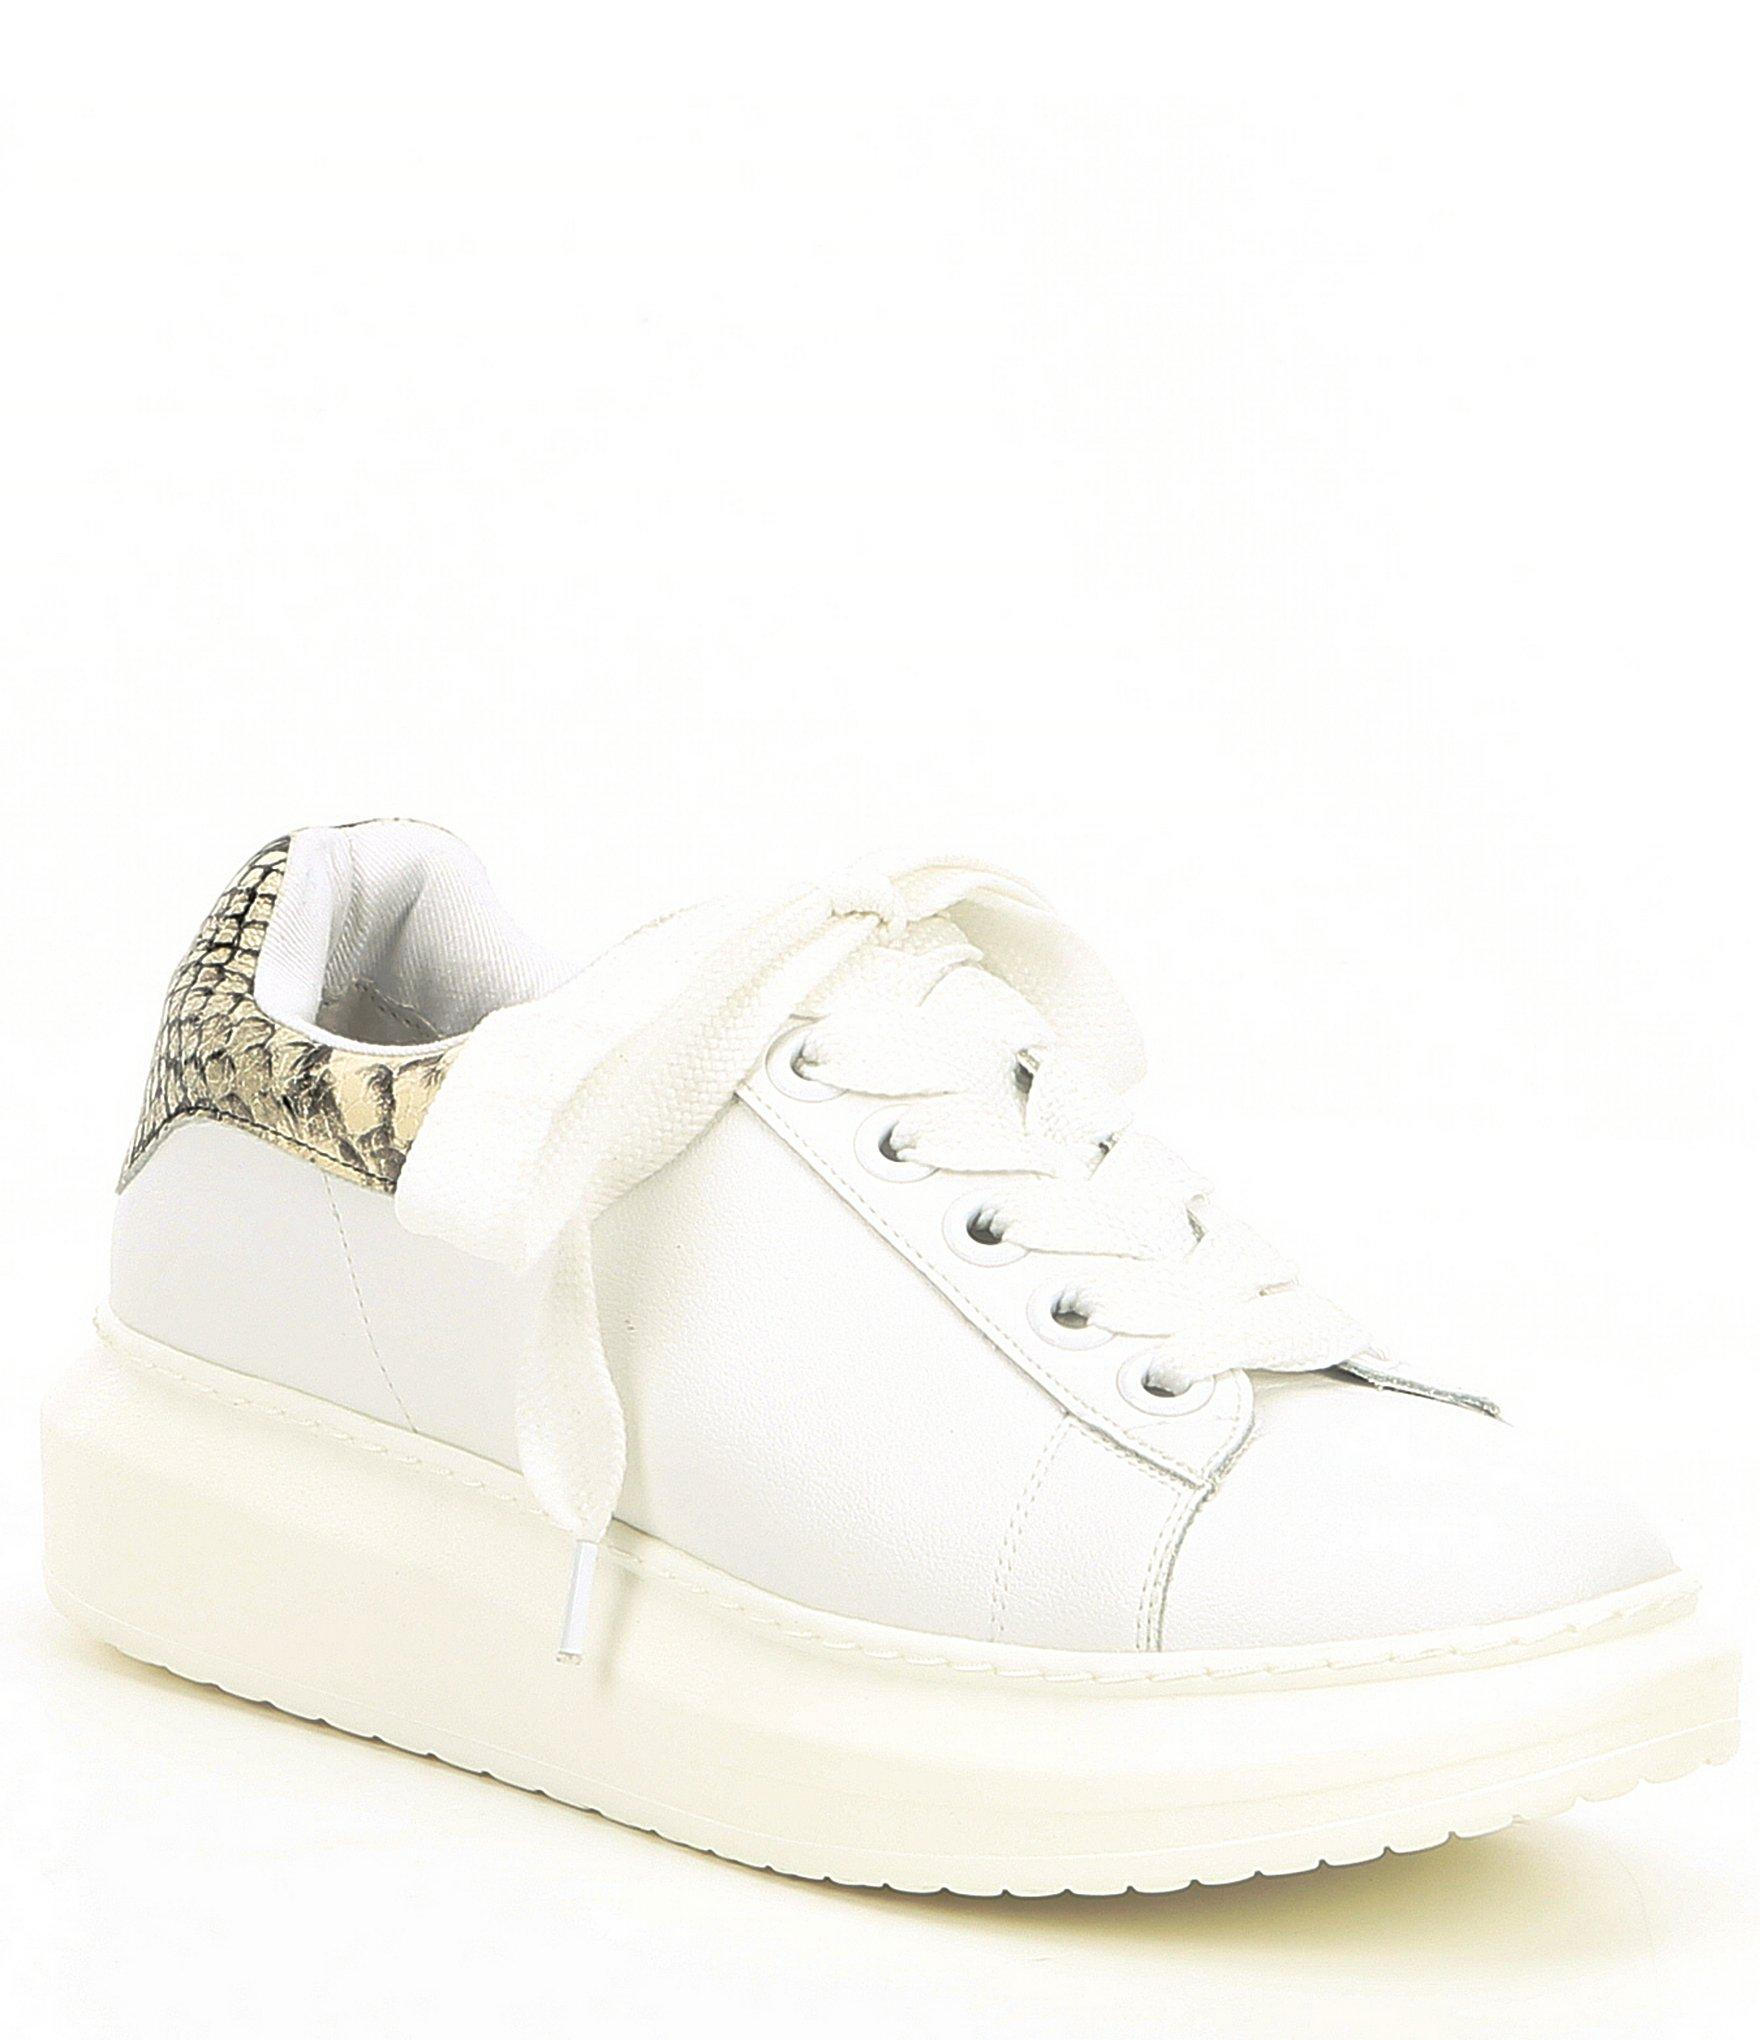 b07fb3cfd Steve Madden Steven By Snake Print & Glazed Leather Chunky Sneakers ...